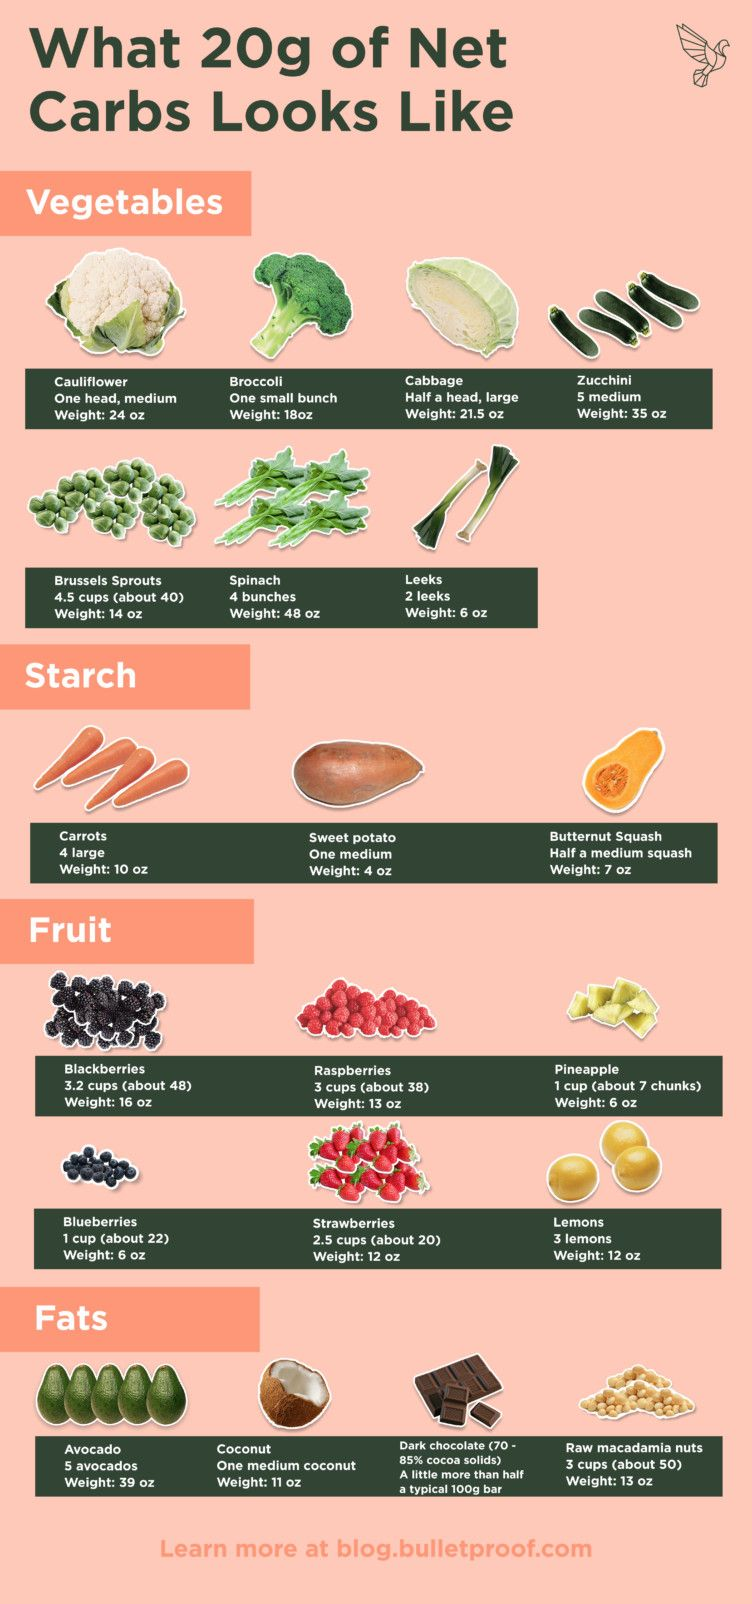 This Keto Carbohydrate Food Chart Shows You What 20g of